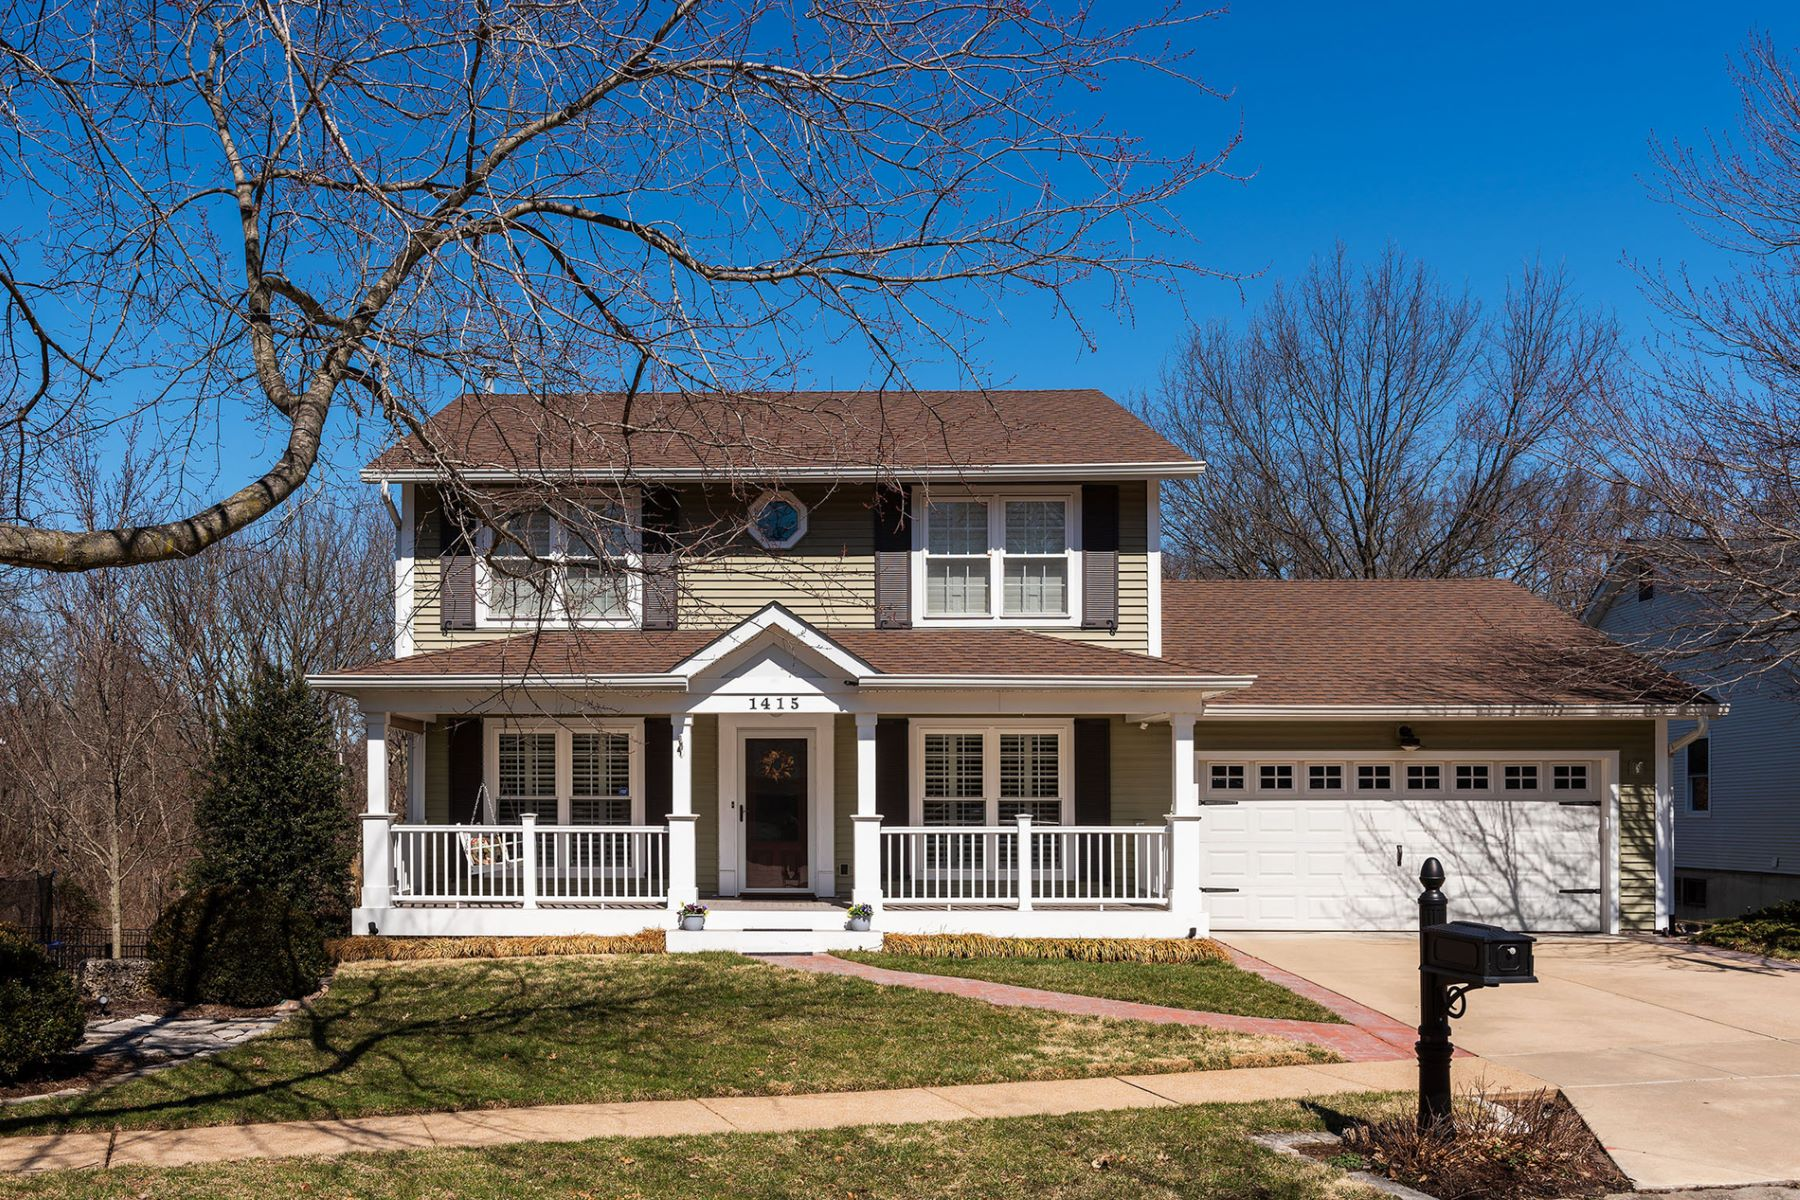 Single Family Home for Sale at 1415 Briarcreek Drive, Kirkwood, MO 63122 1415 Briarcreek Drive Kirkwood, Missouri 63122 United States